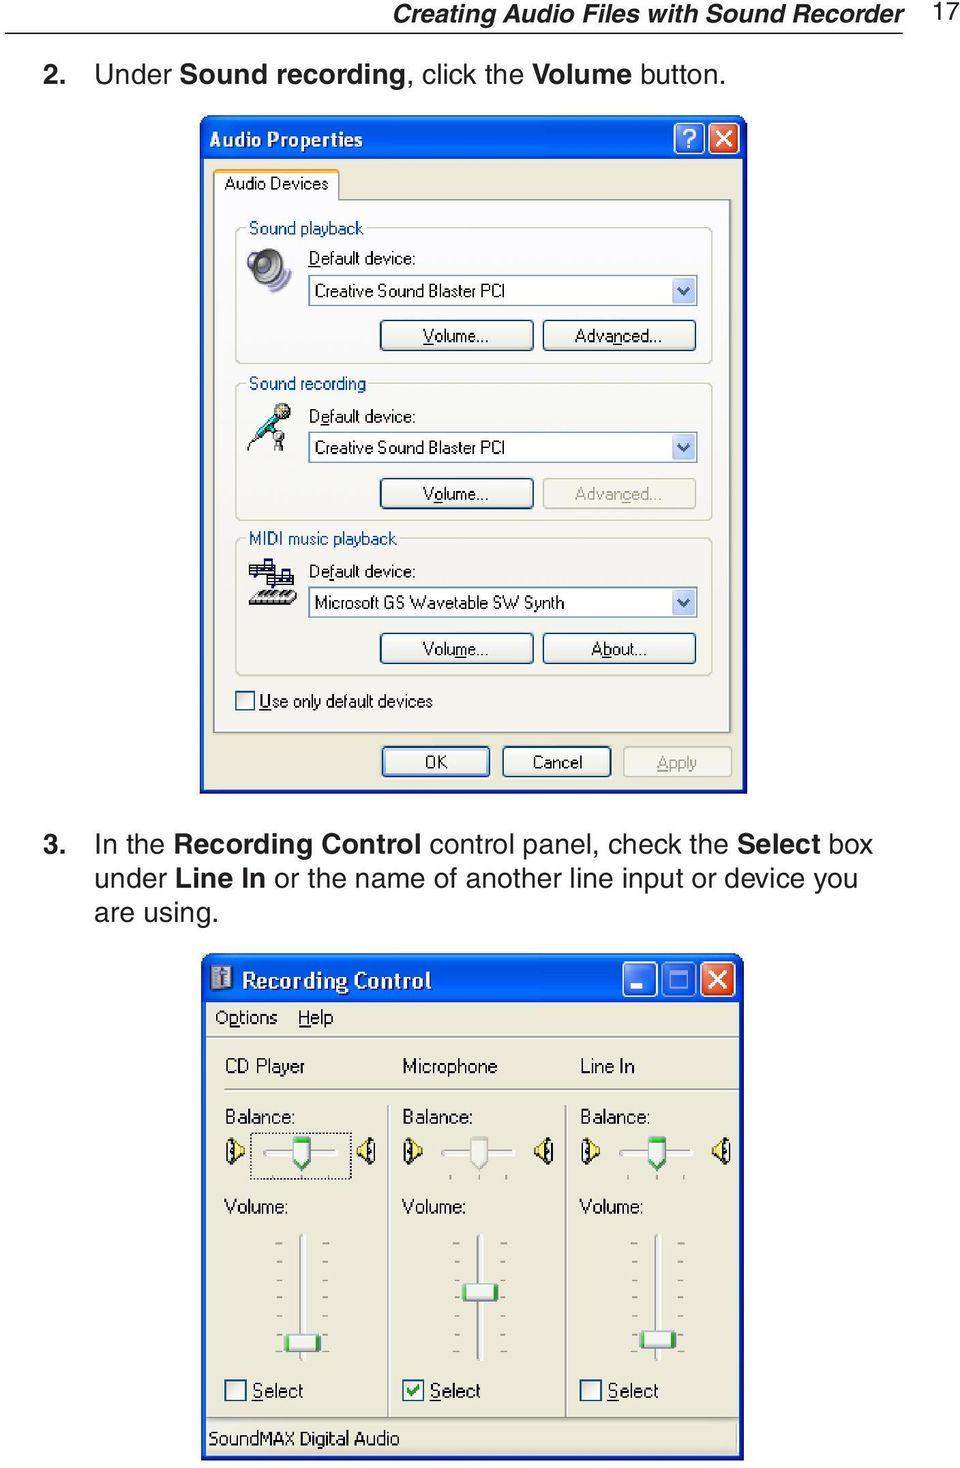 In the Recording Control control panel, check the Select